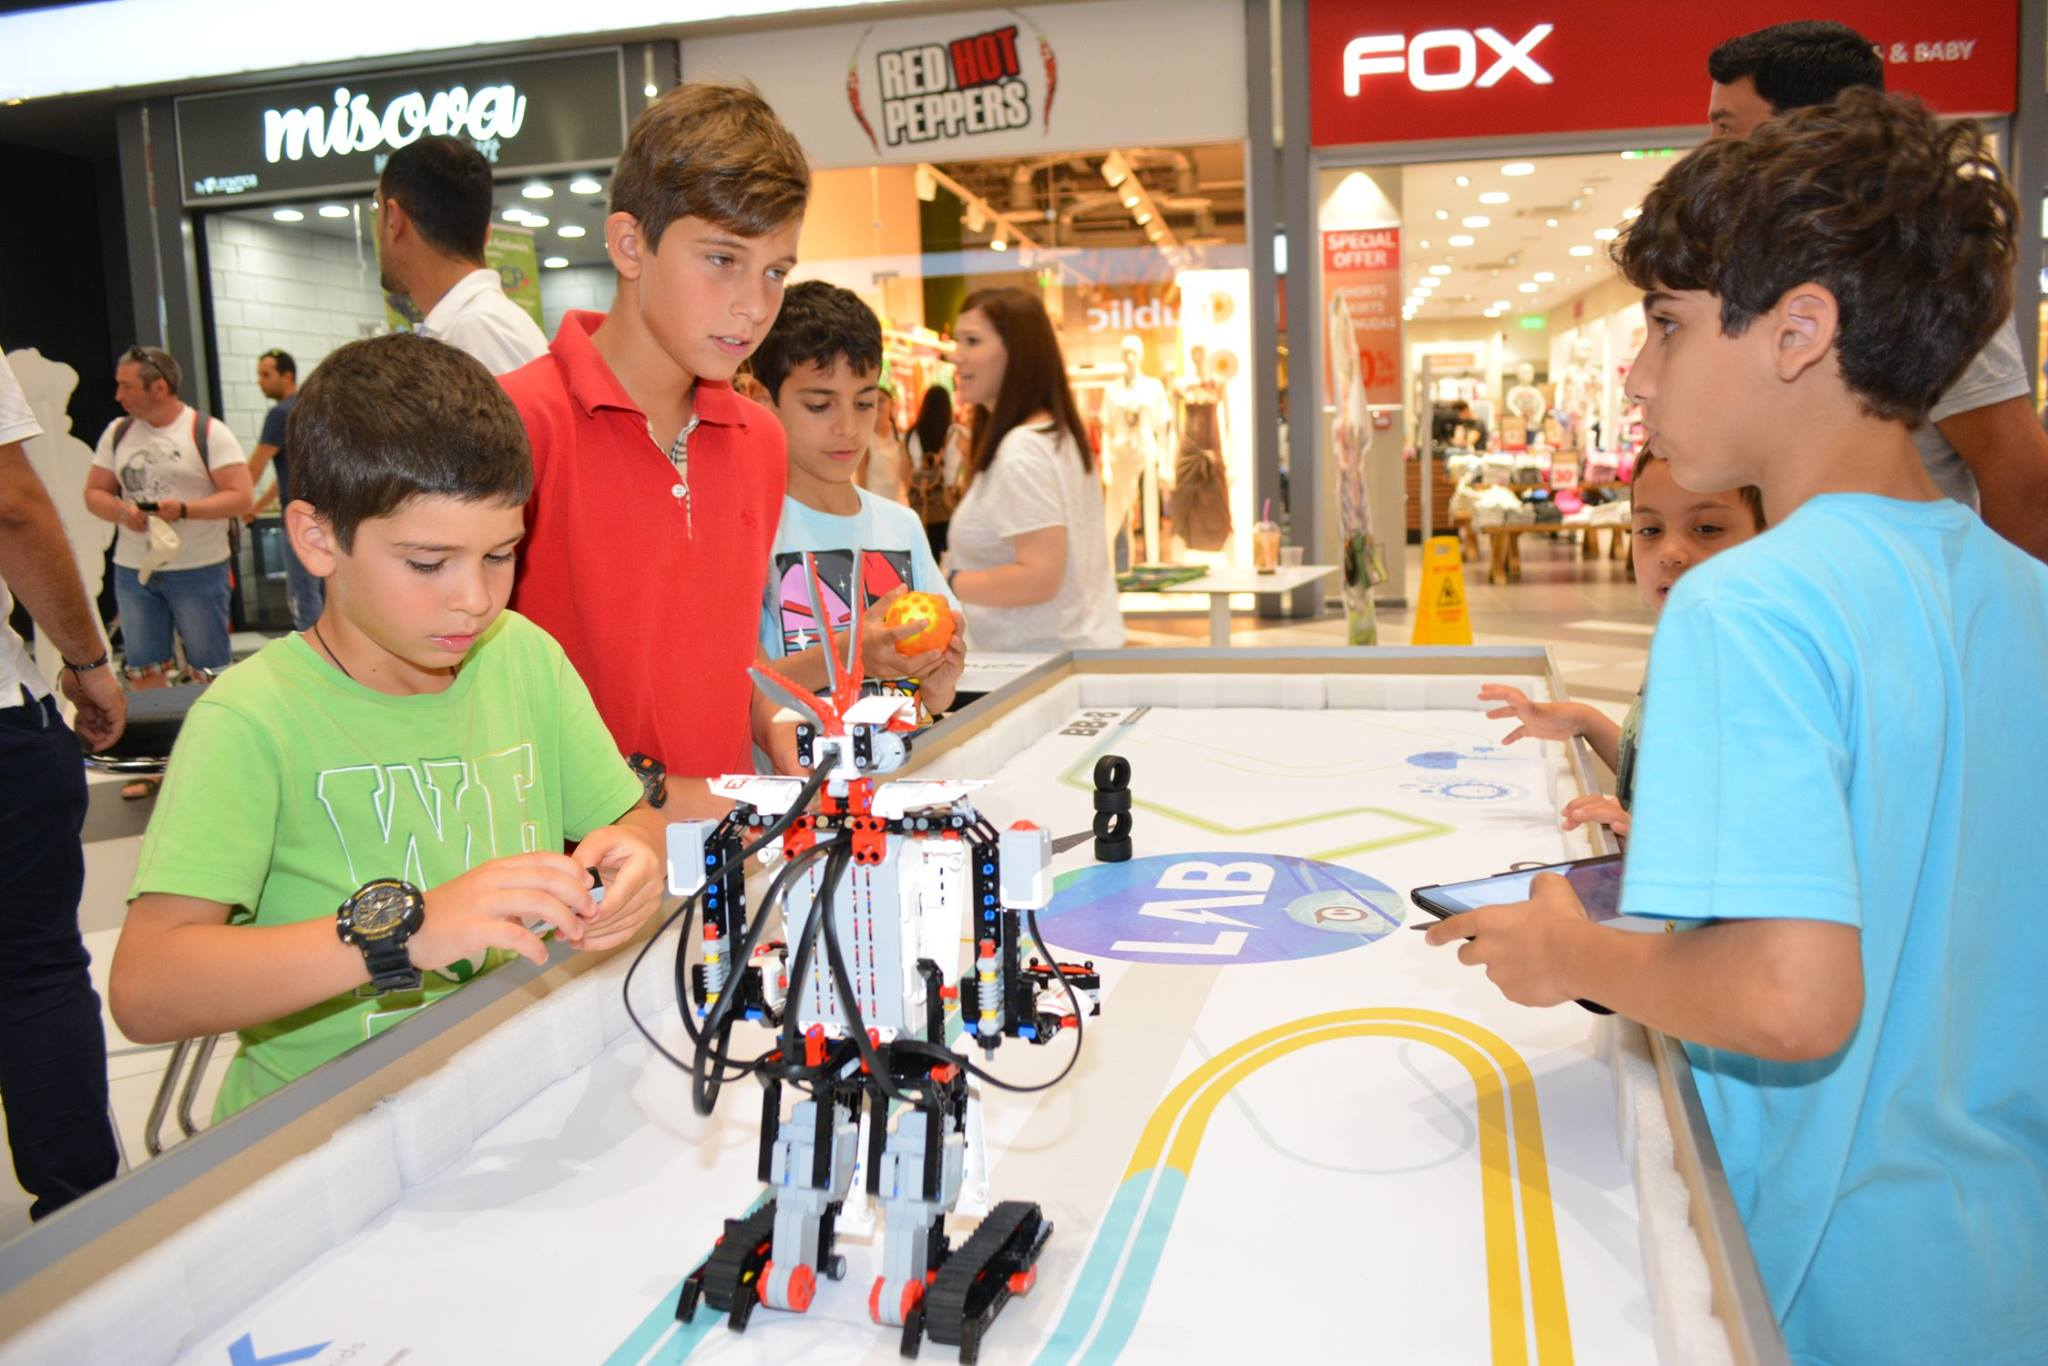 robotic development in 21st century essay Preparing for the 21st century technology and the nation's future private firms have the primary responsibility for the development and adoption of technology in.